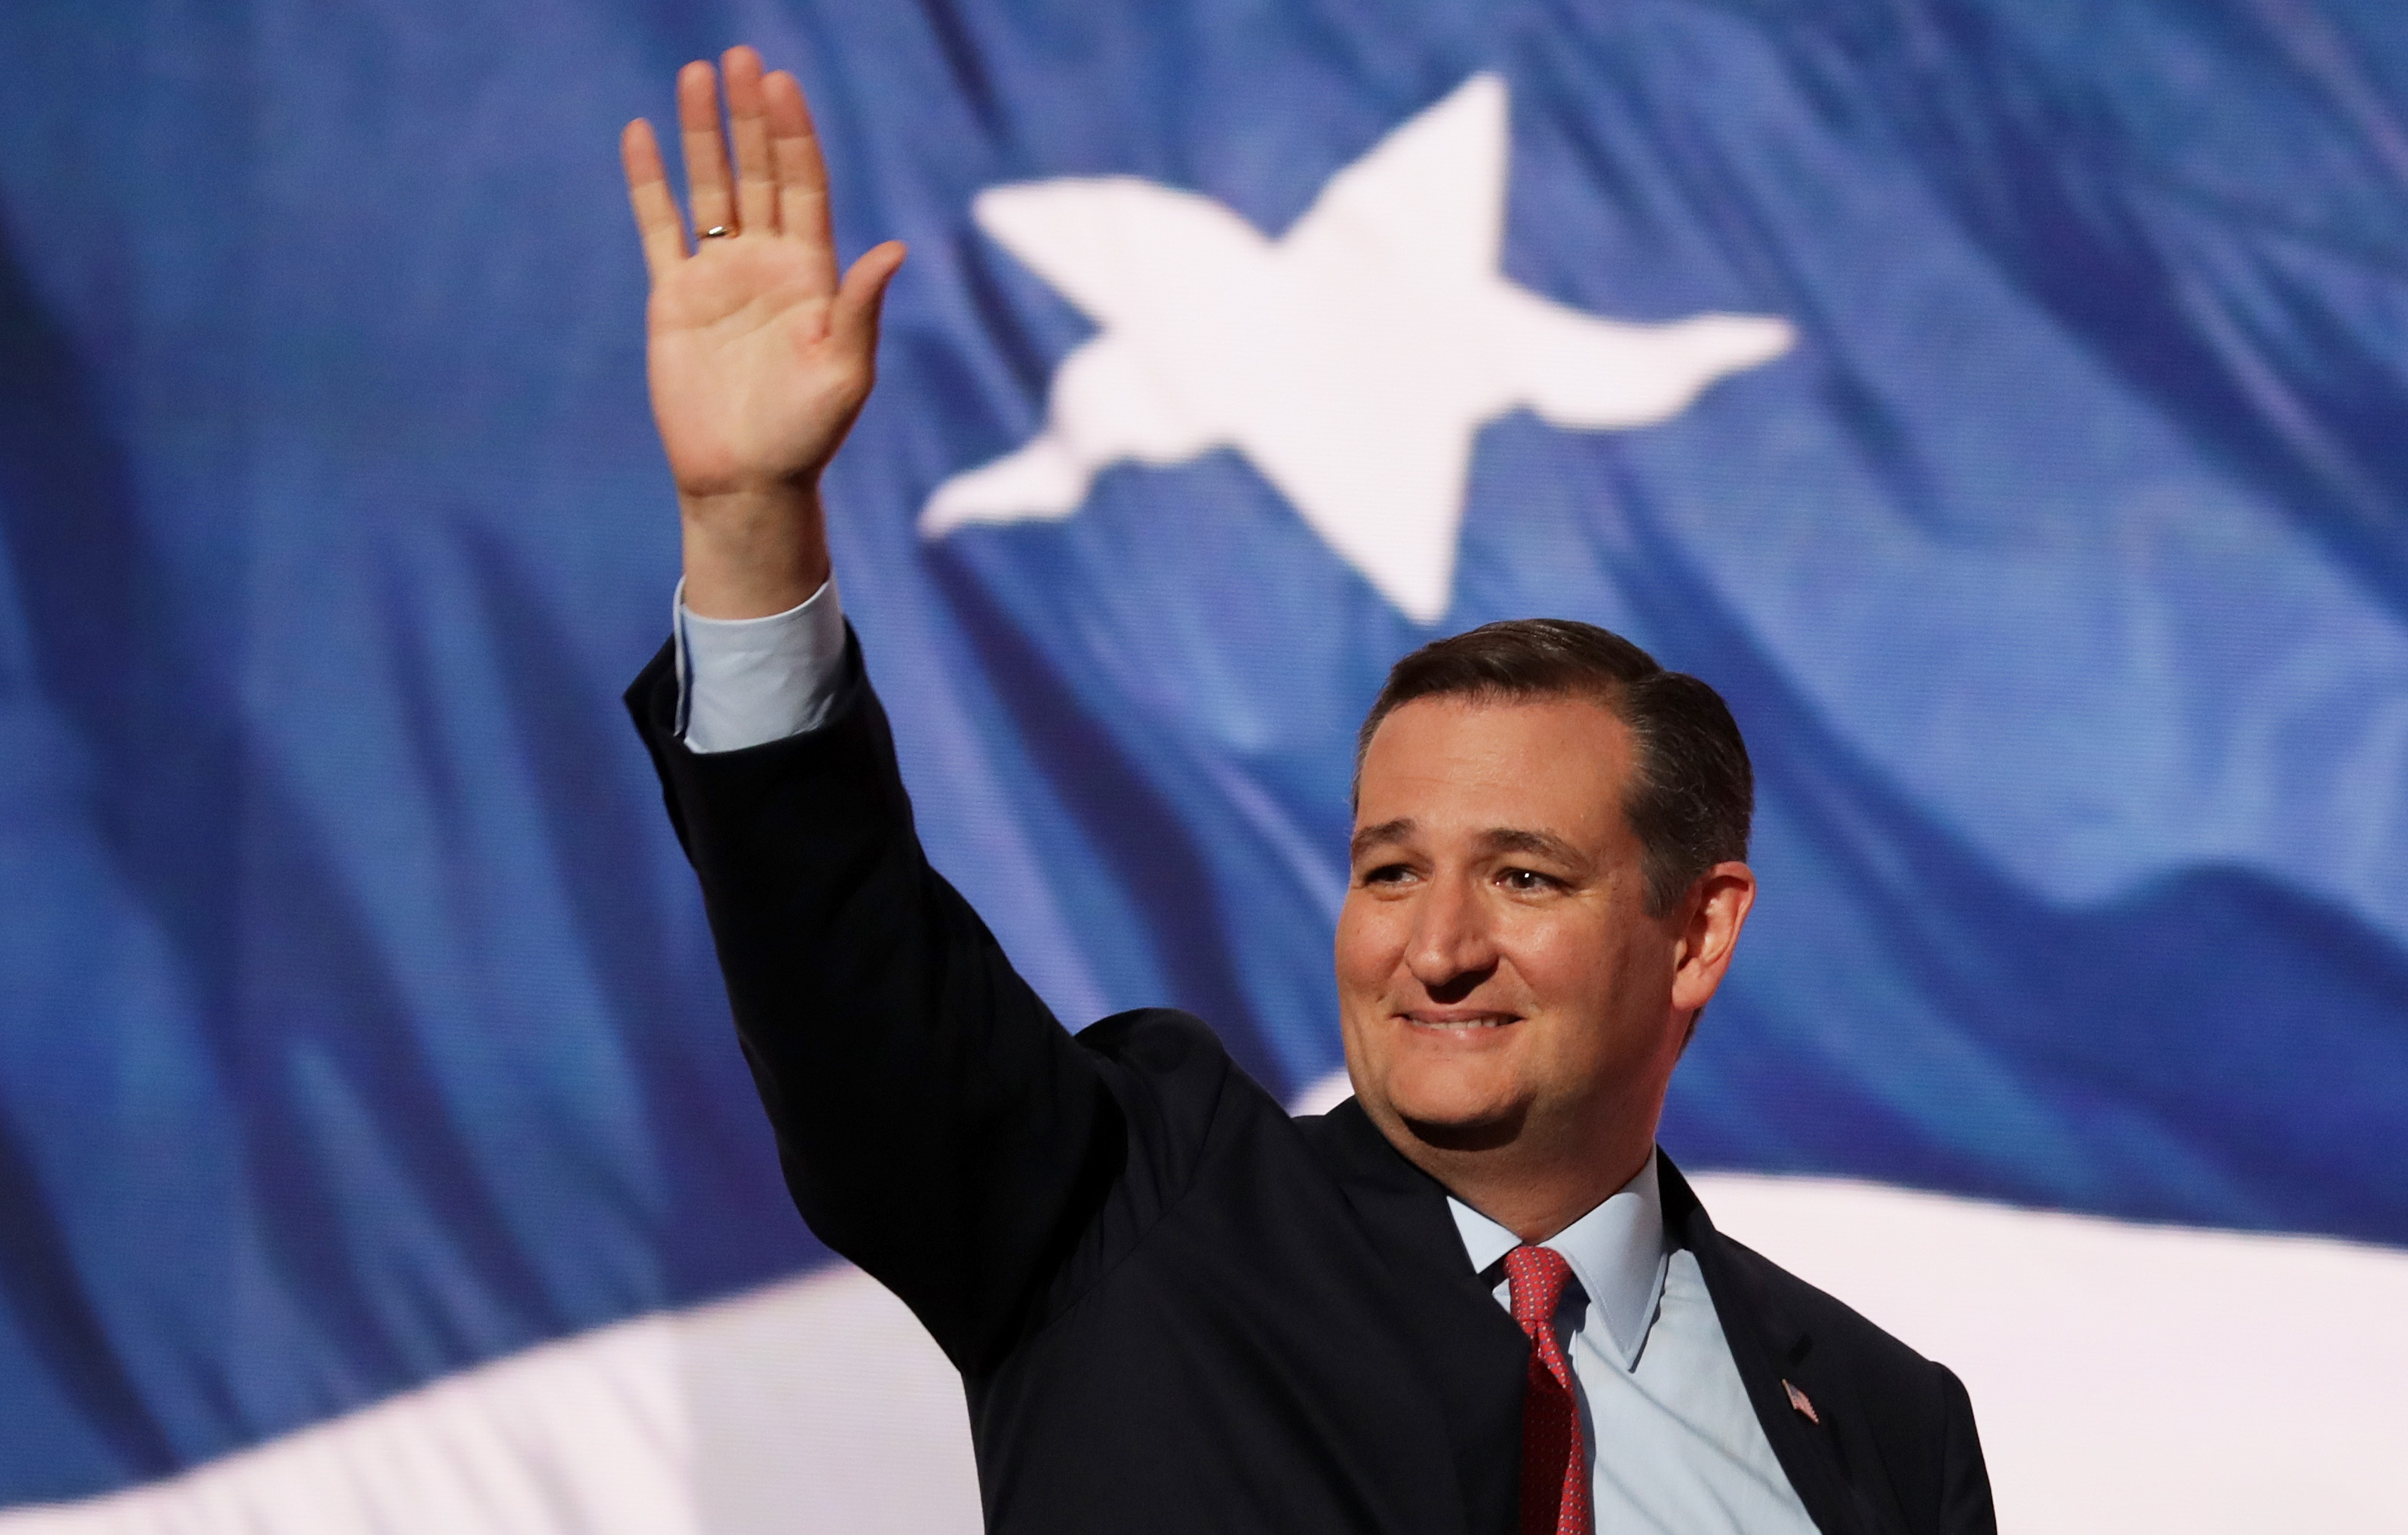 Sen. Ted Cruz (R-TX) waves to the crowd as he walks on stage to deliver a speech on the third day of the Republican National Convention on July 20, 2016 at the Quicken Loans Arena in Cleveland, Ohio.